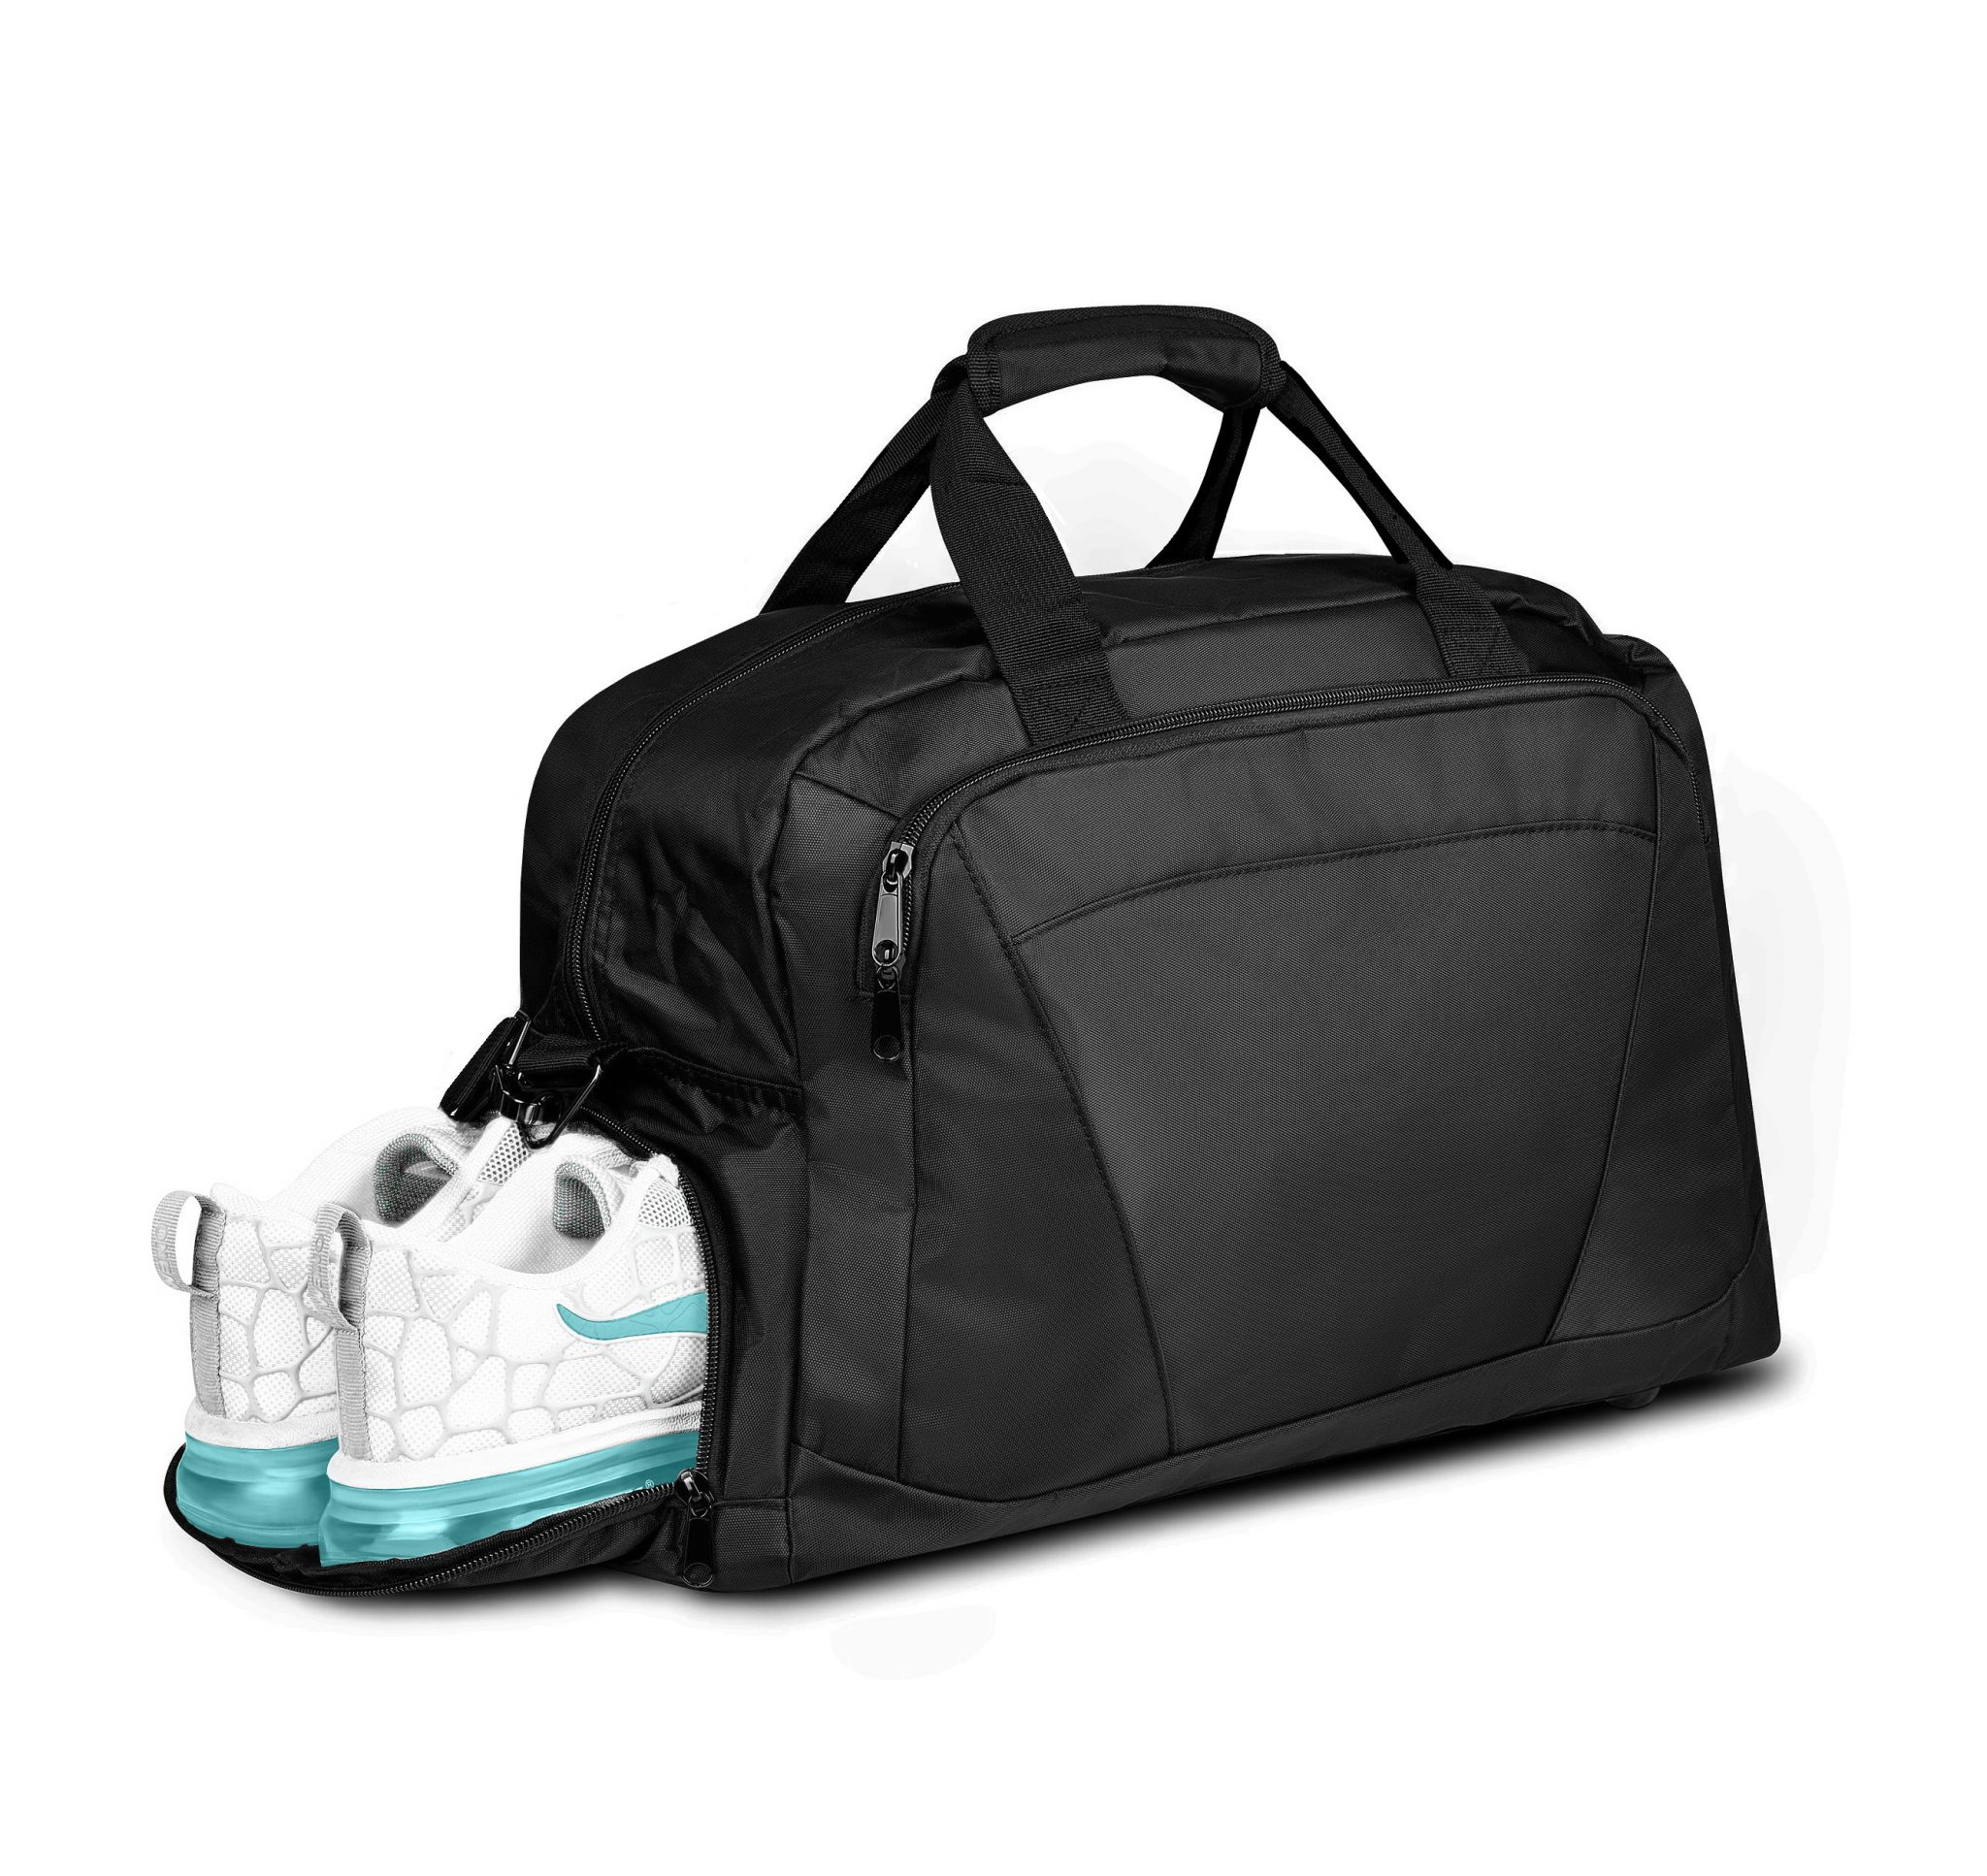 Hard Work Sports Gym Bag 2.0 with Shoe Compartment